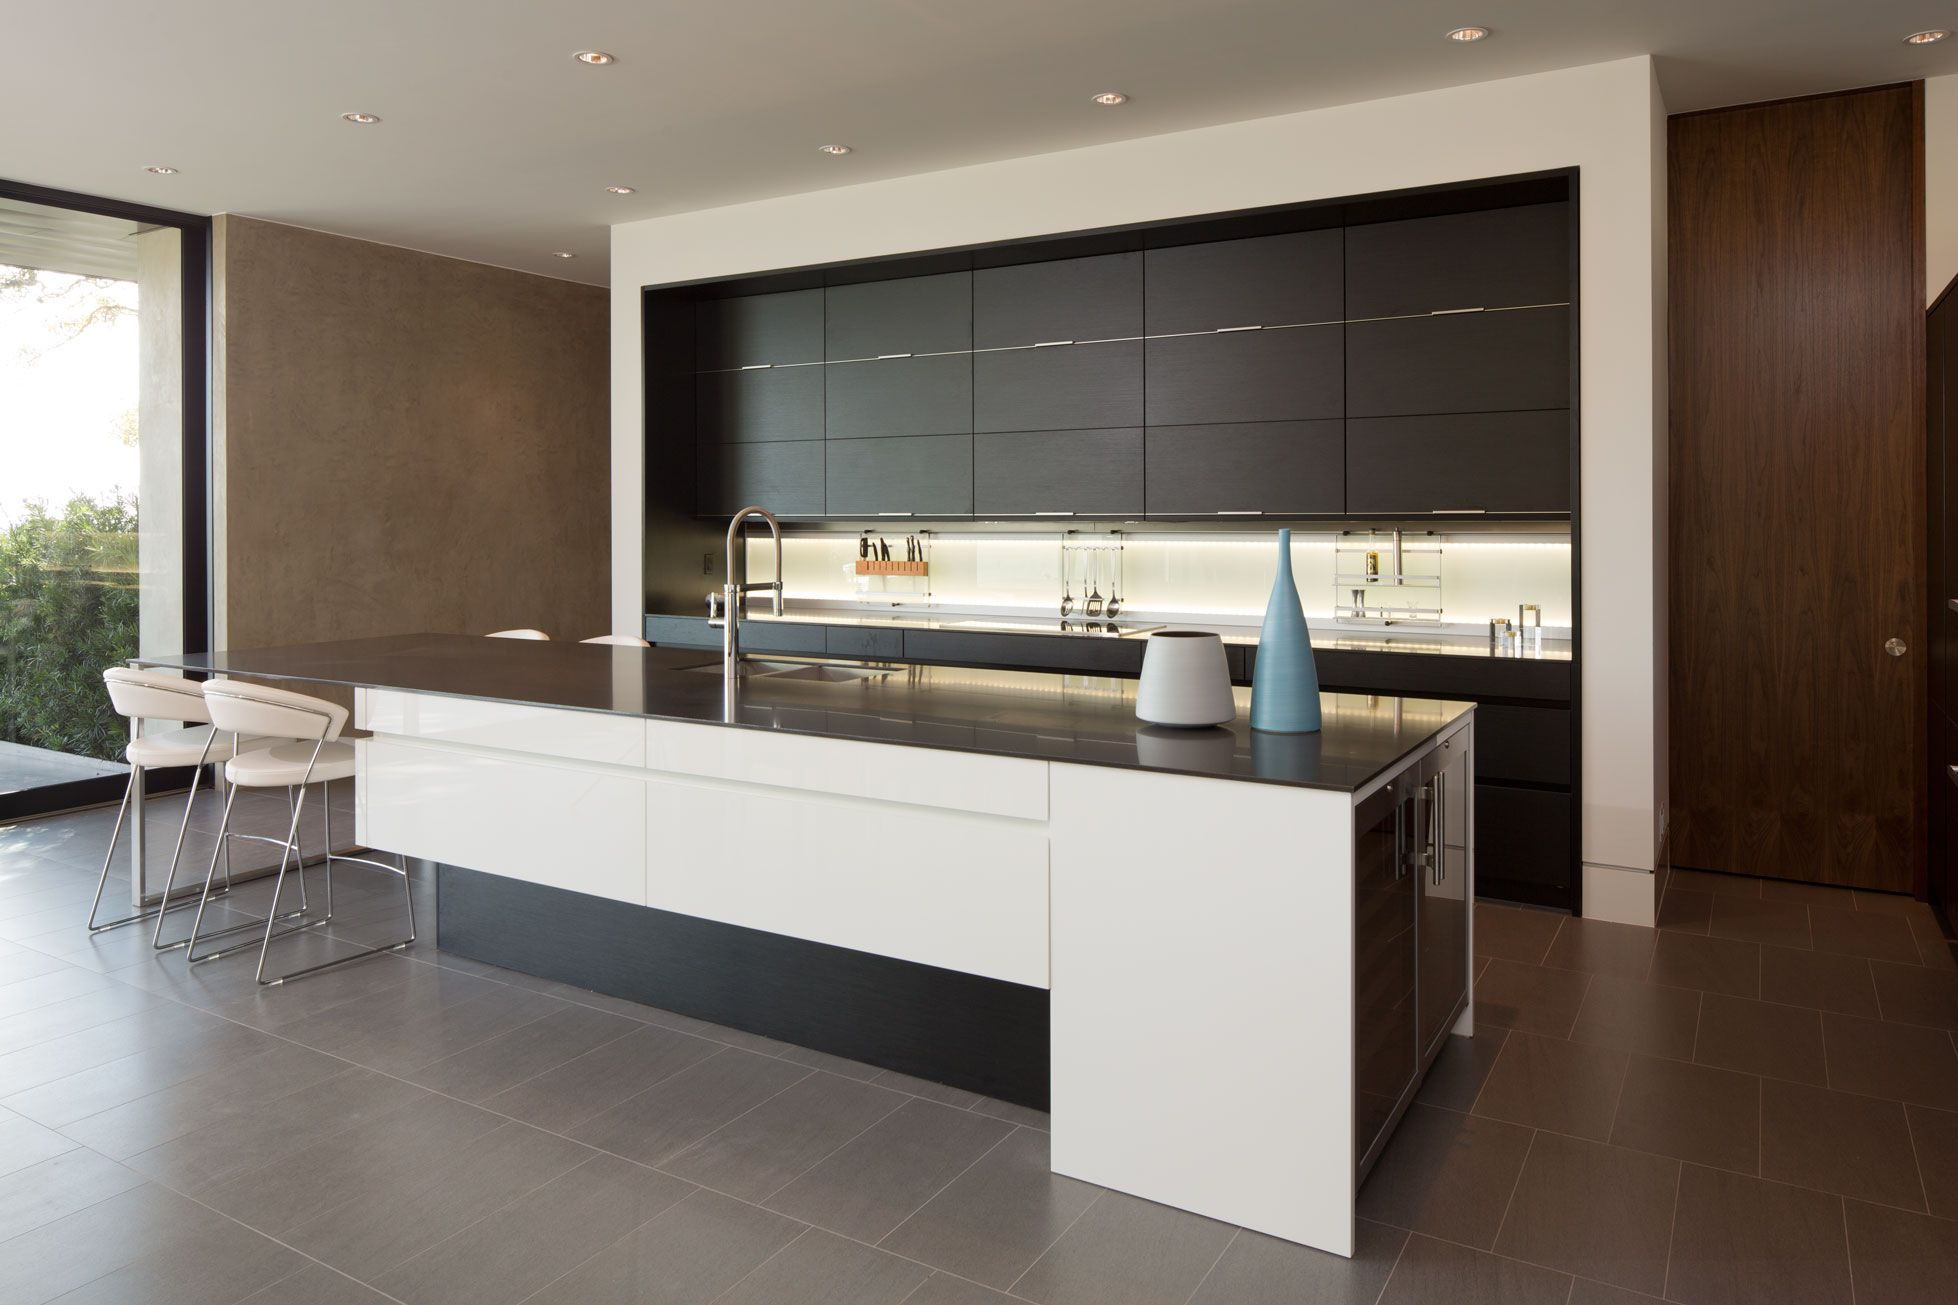 Skyline project austin tx kitchen cabinets by leicht for Modern kitchen designs gallery